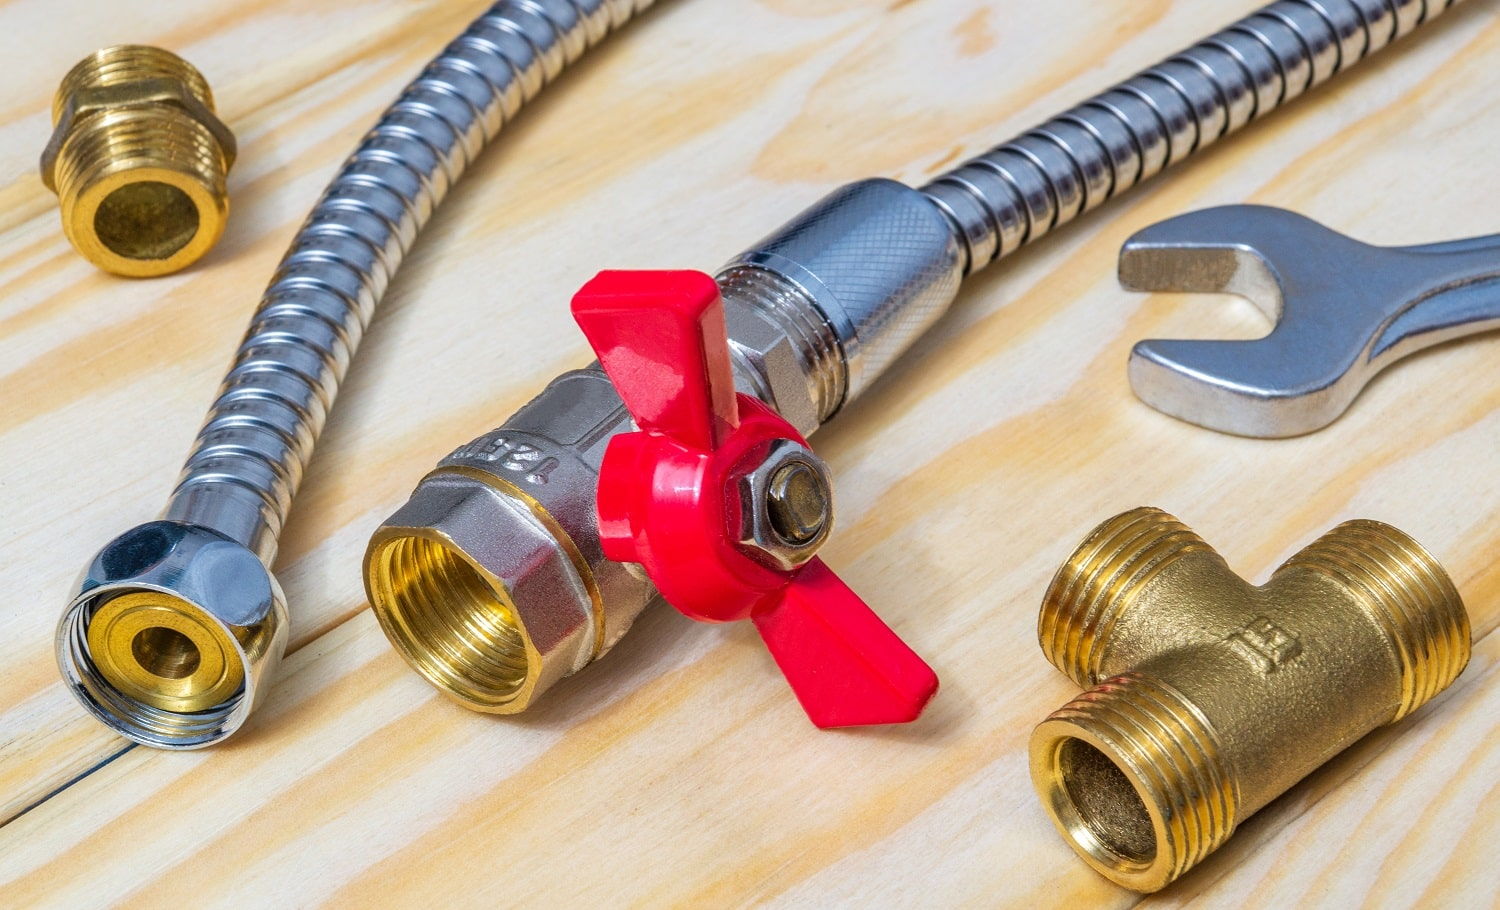 Metal ball valve with a red handle with fittings and hose prepared for repair on wooden boards